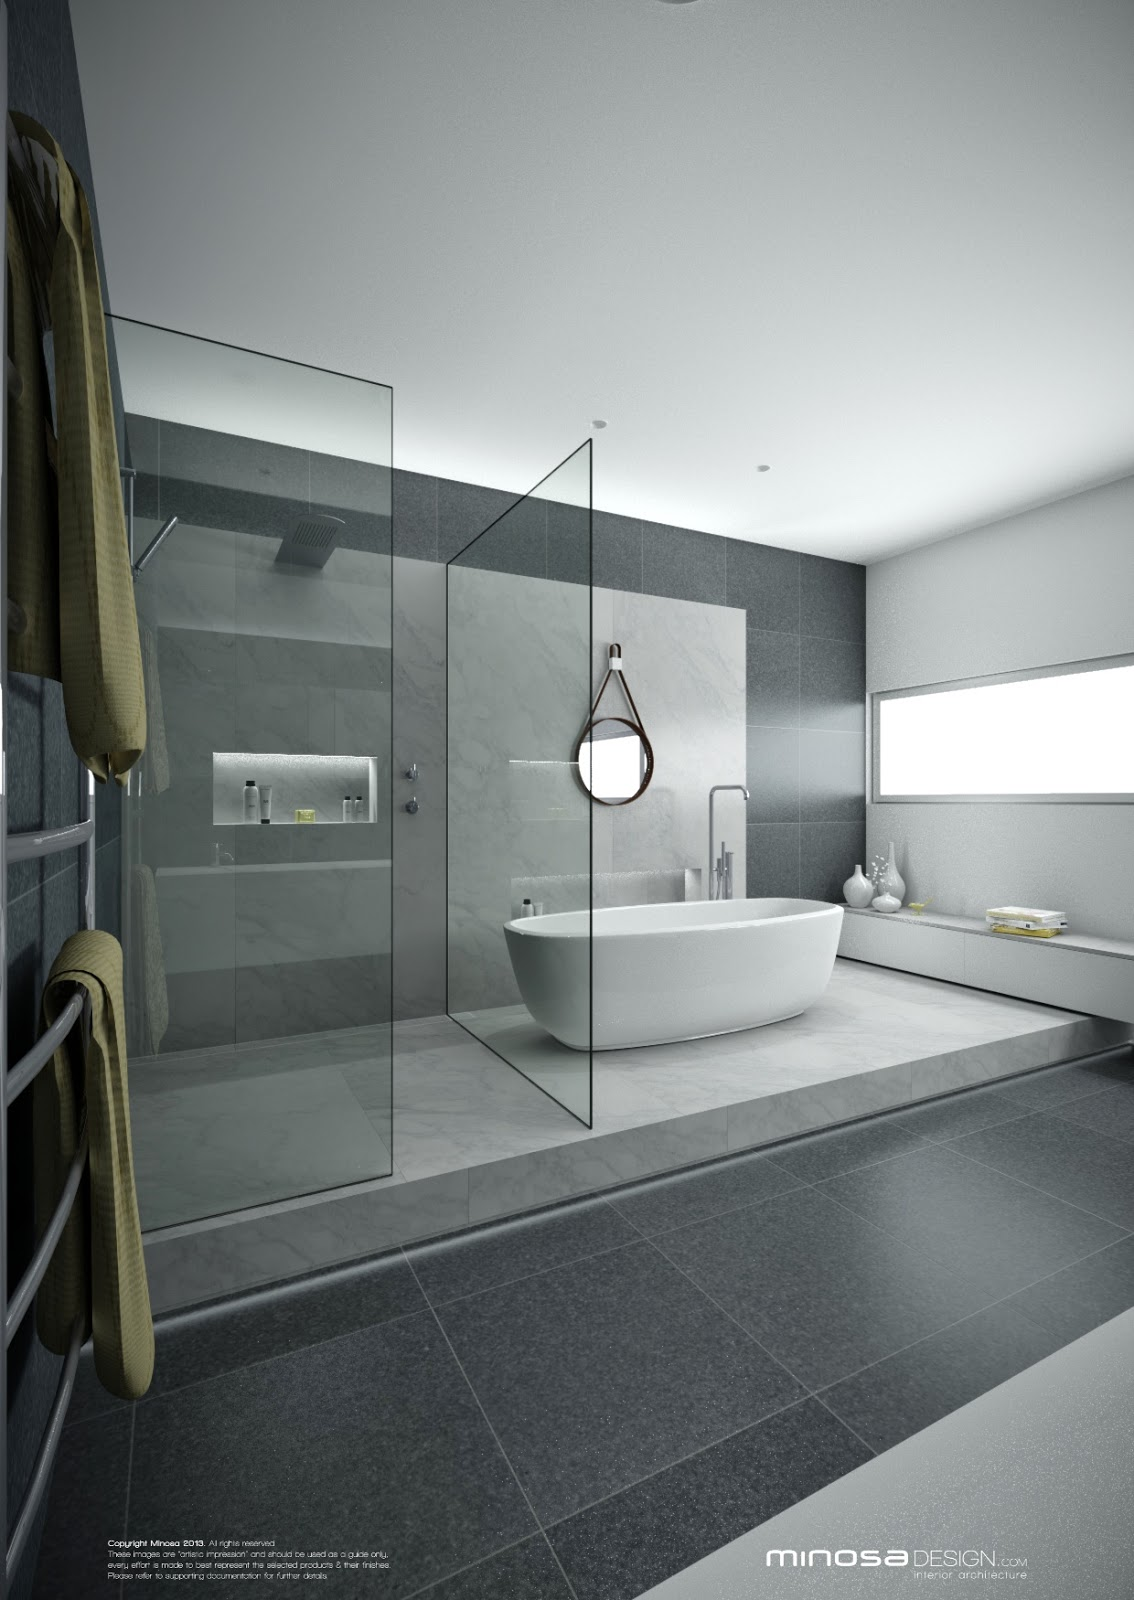 Minosa a real showstopper modern bathroom for Create a bathroom design online